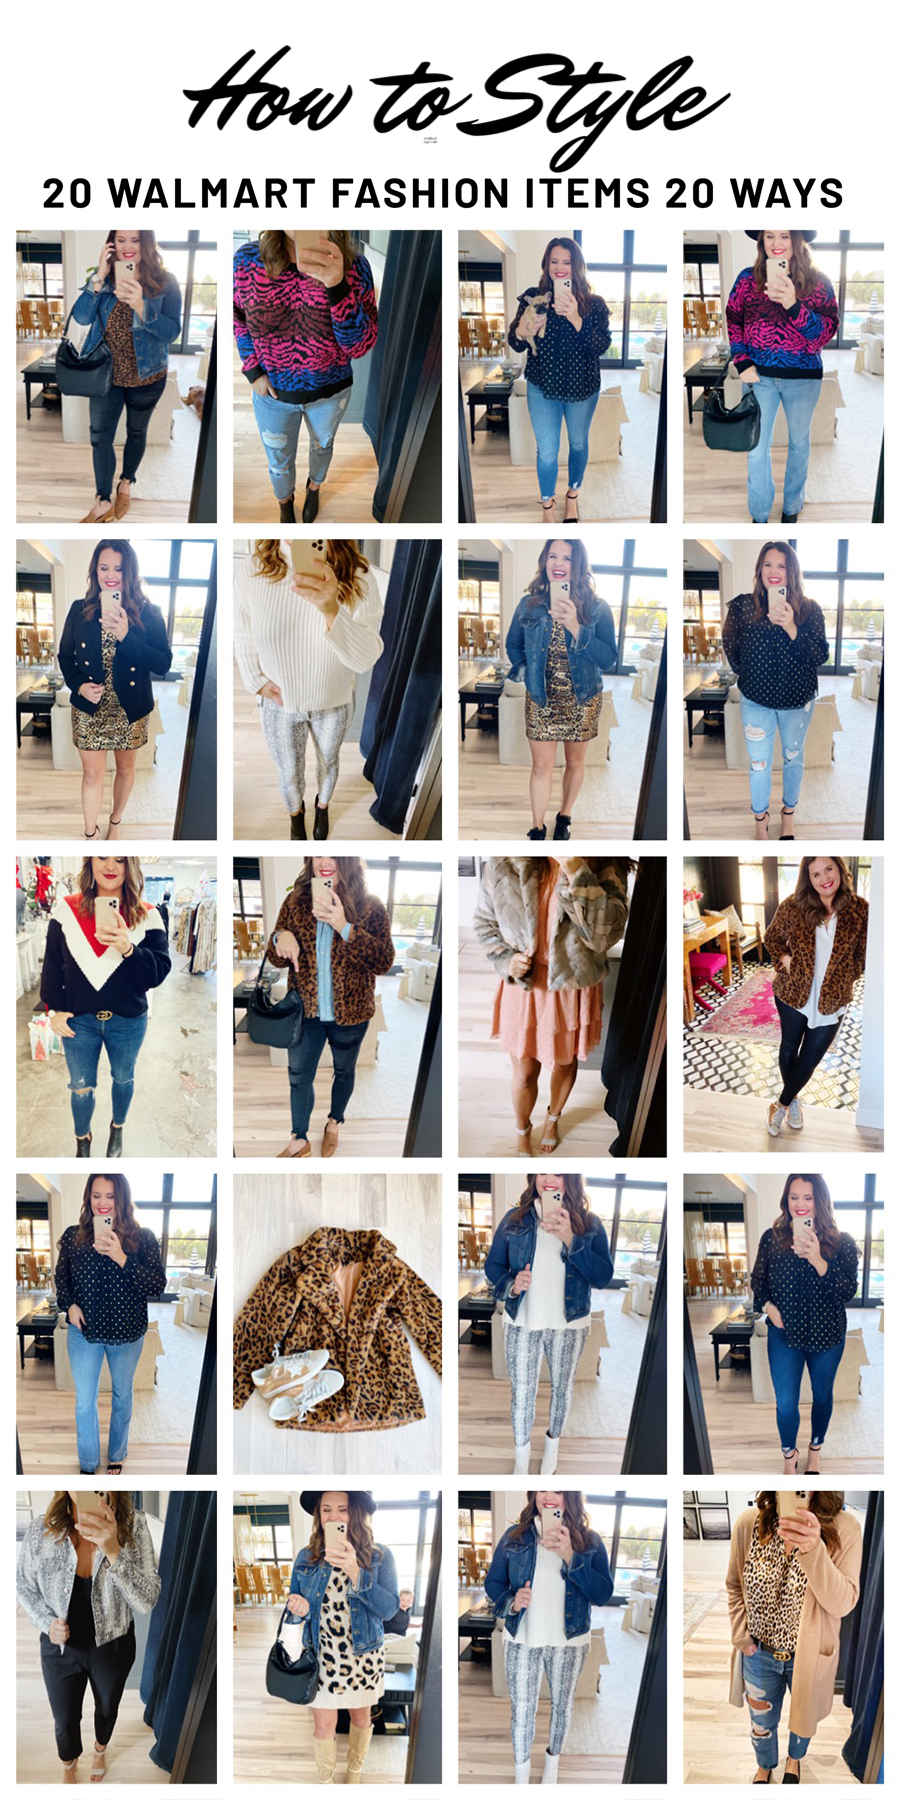 How to Style 20 Walmart Fashion Items 20 Different Ways